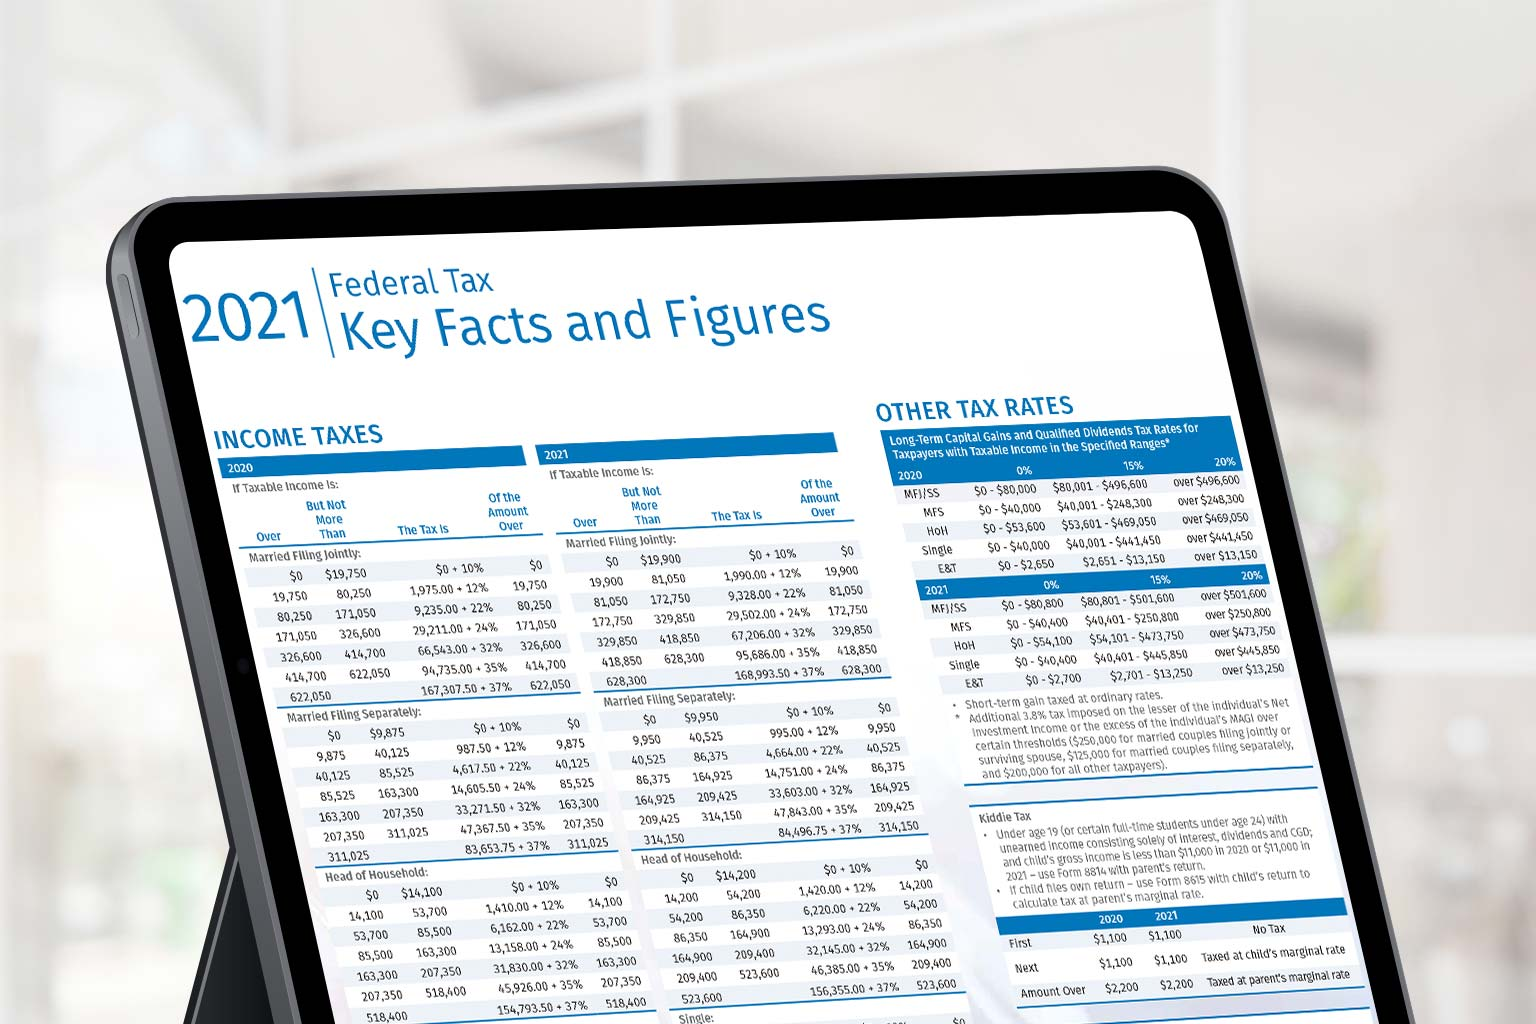 Depreciation Key Facts and Figures Card